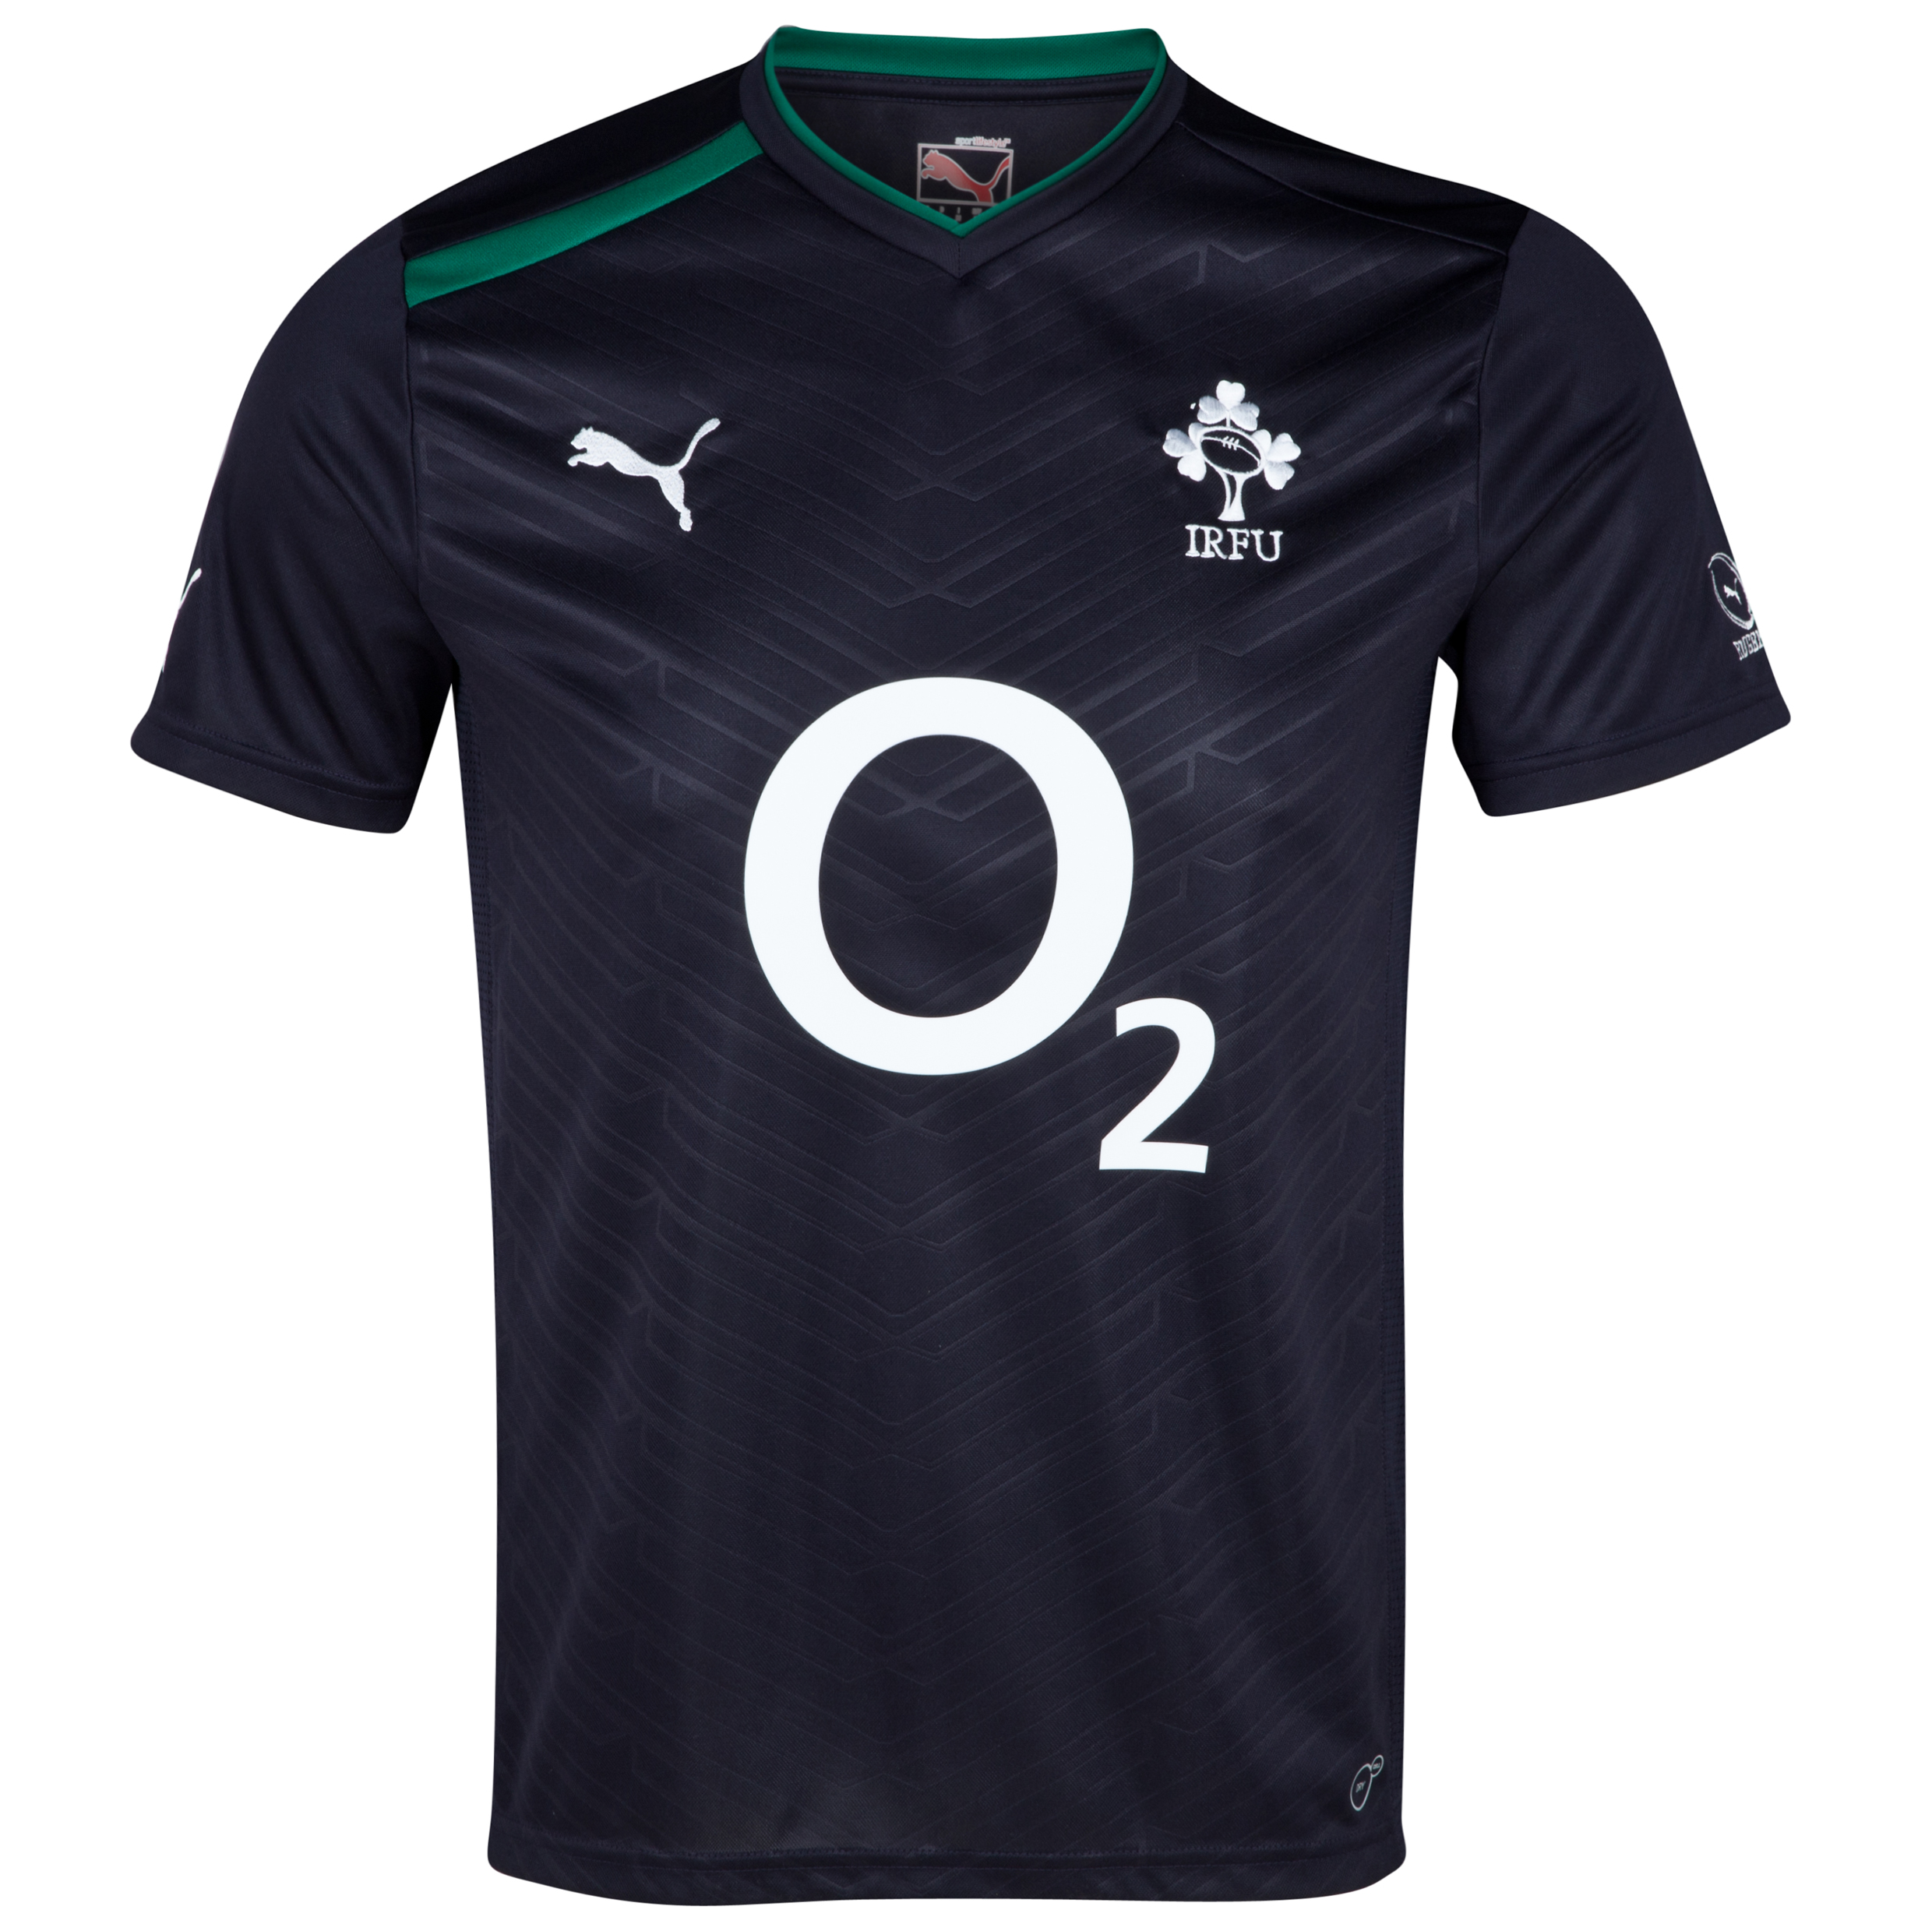 Ireland Rugby Workout Shirt - New Navy/Powder Green/White